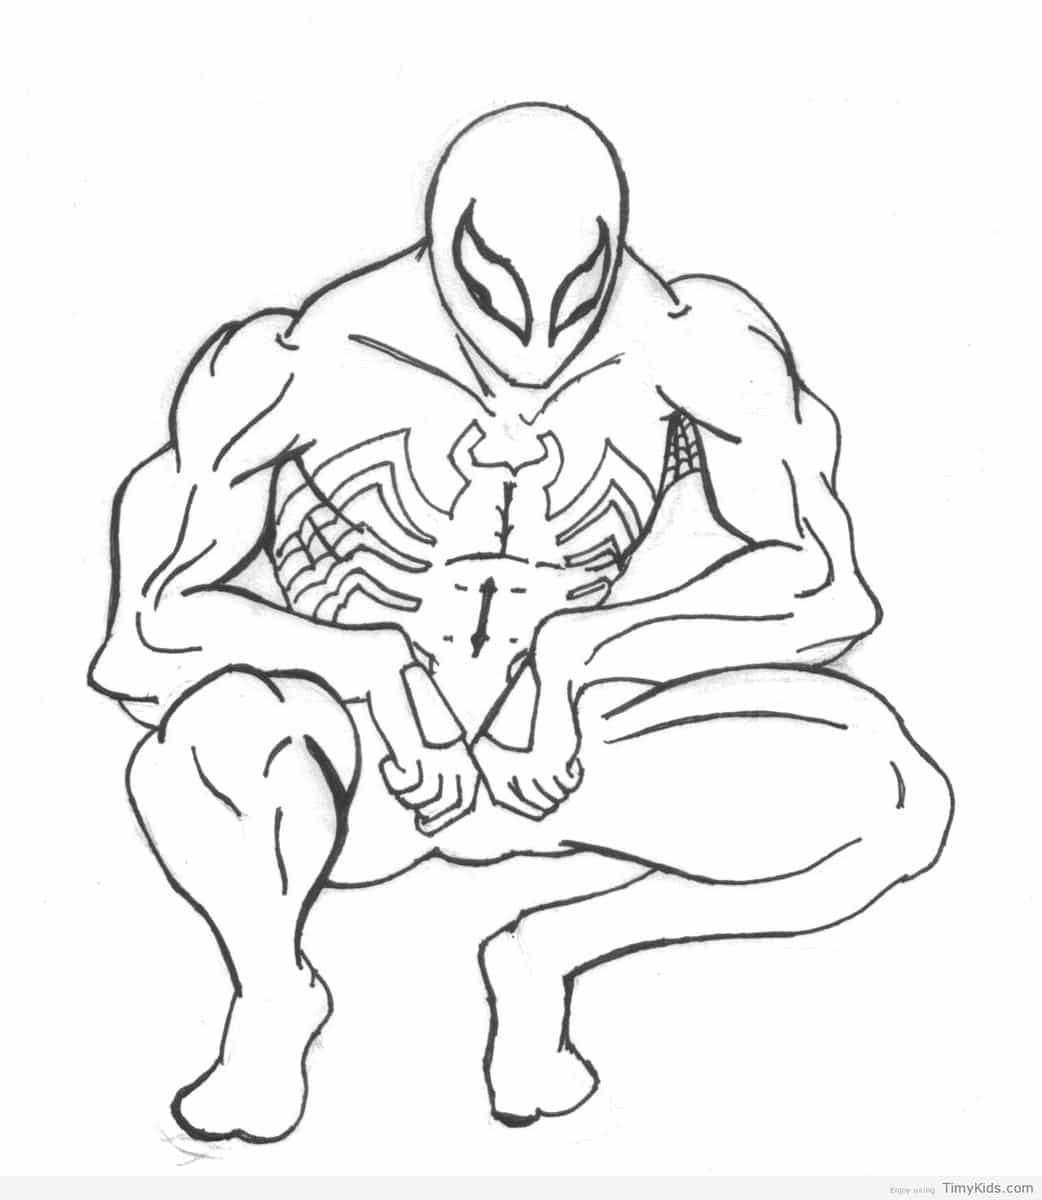 http://timykids.com/black-suit-spiderman-coloring-pages.html ...